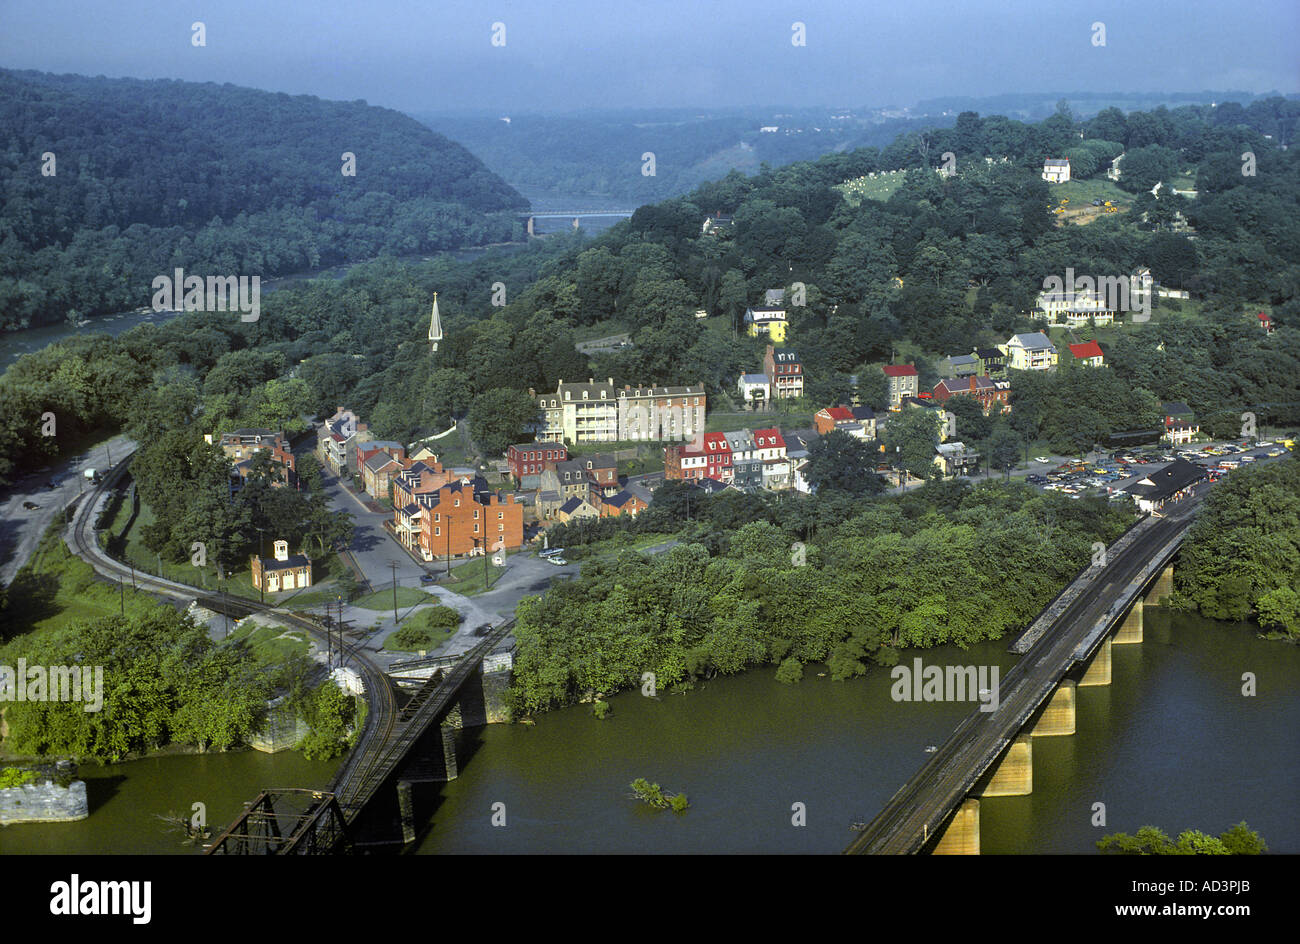 Harpers Ferry National Historical Park West Virginia Zusammenfluss des Shenandoah und des Potomac Rivers Stockbild